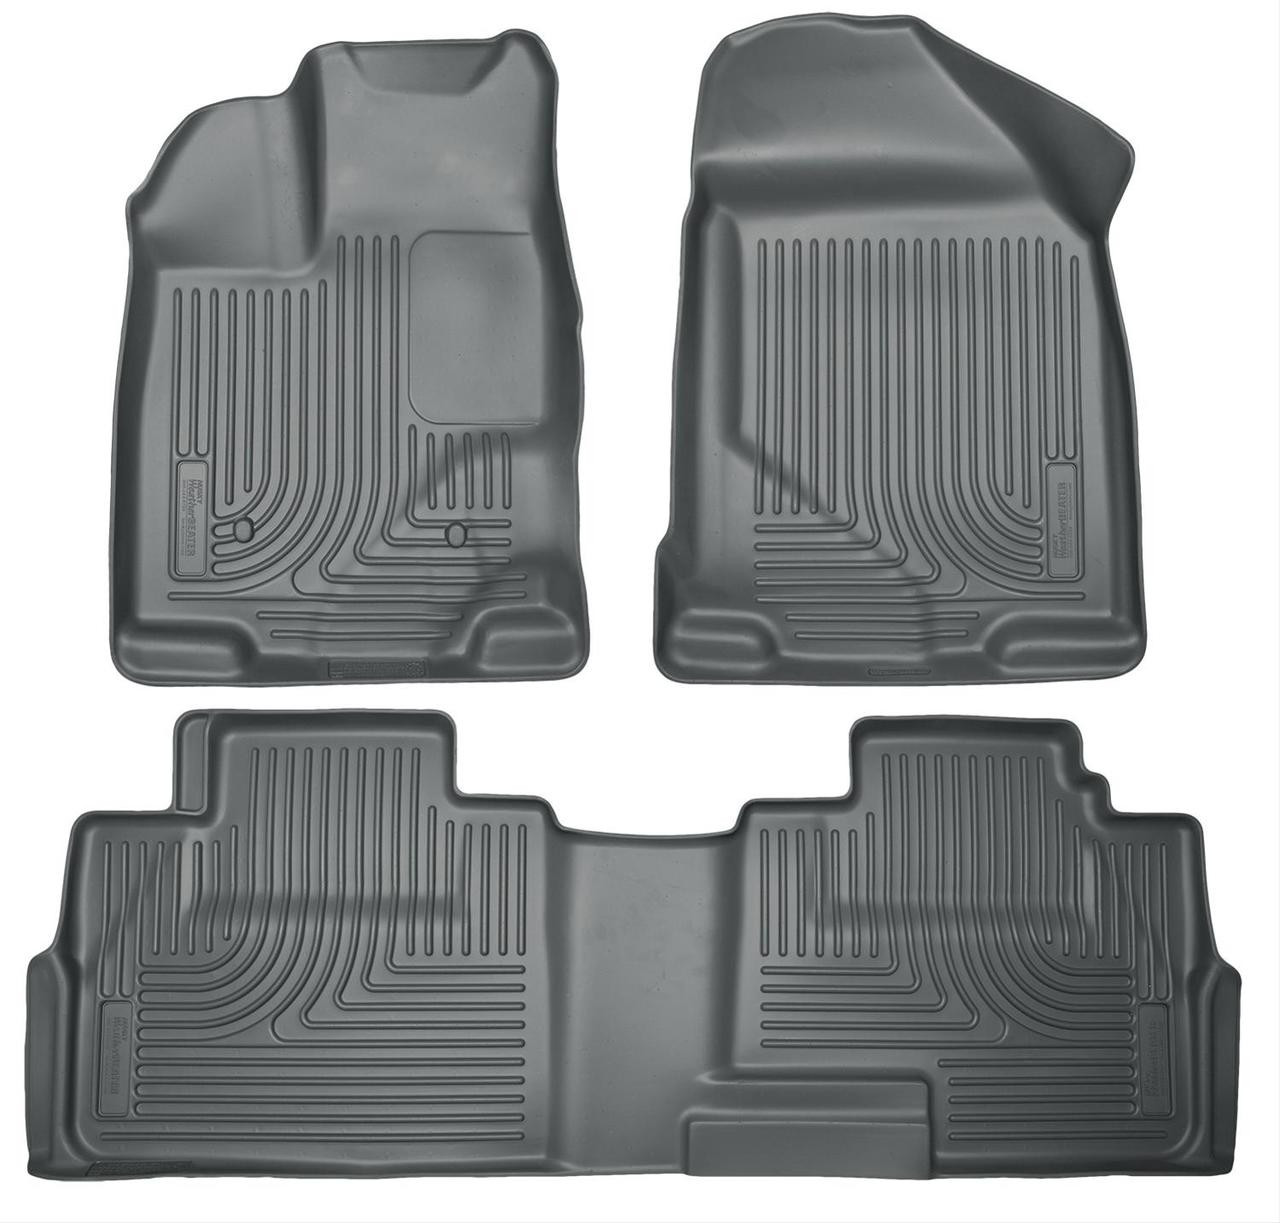 07-14 EDGE 07-15 MKX FRONT/2ND SEAT LINERS WEATHERBEATER GREY